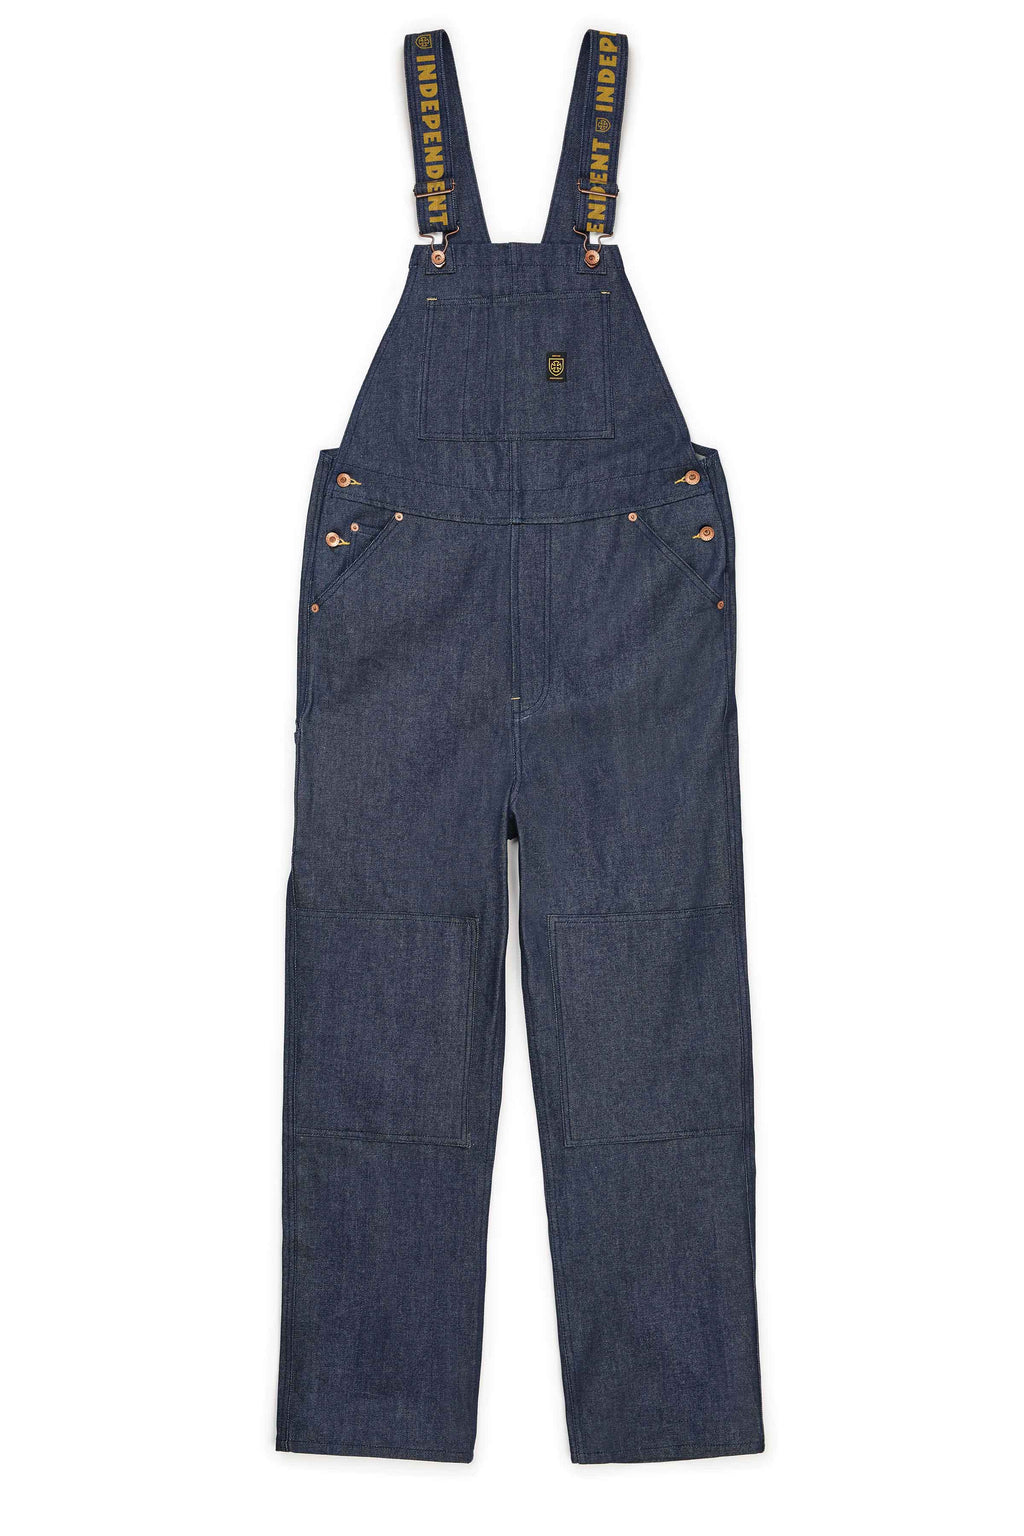 Yard Denim Overall